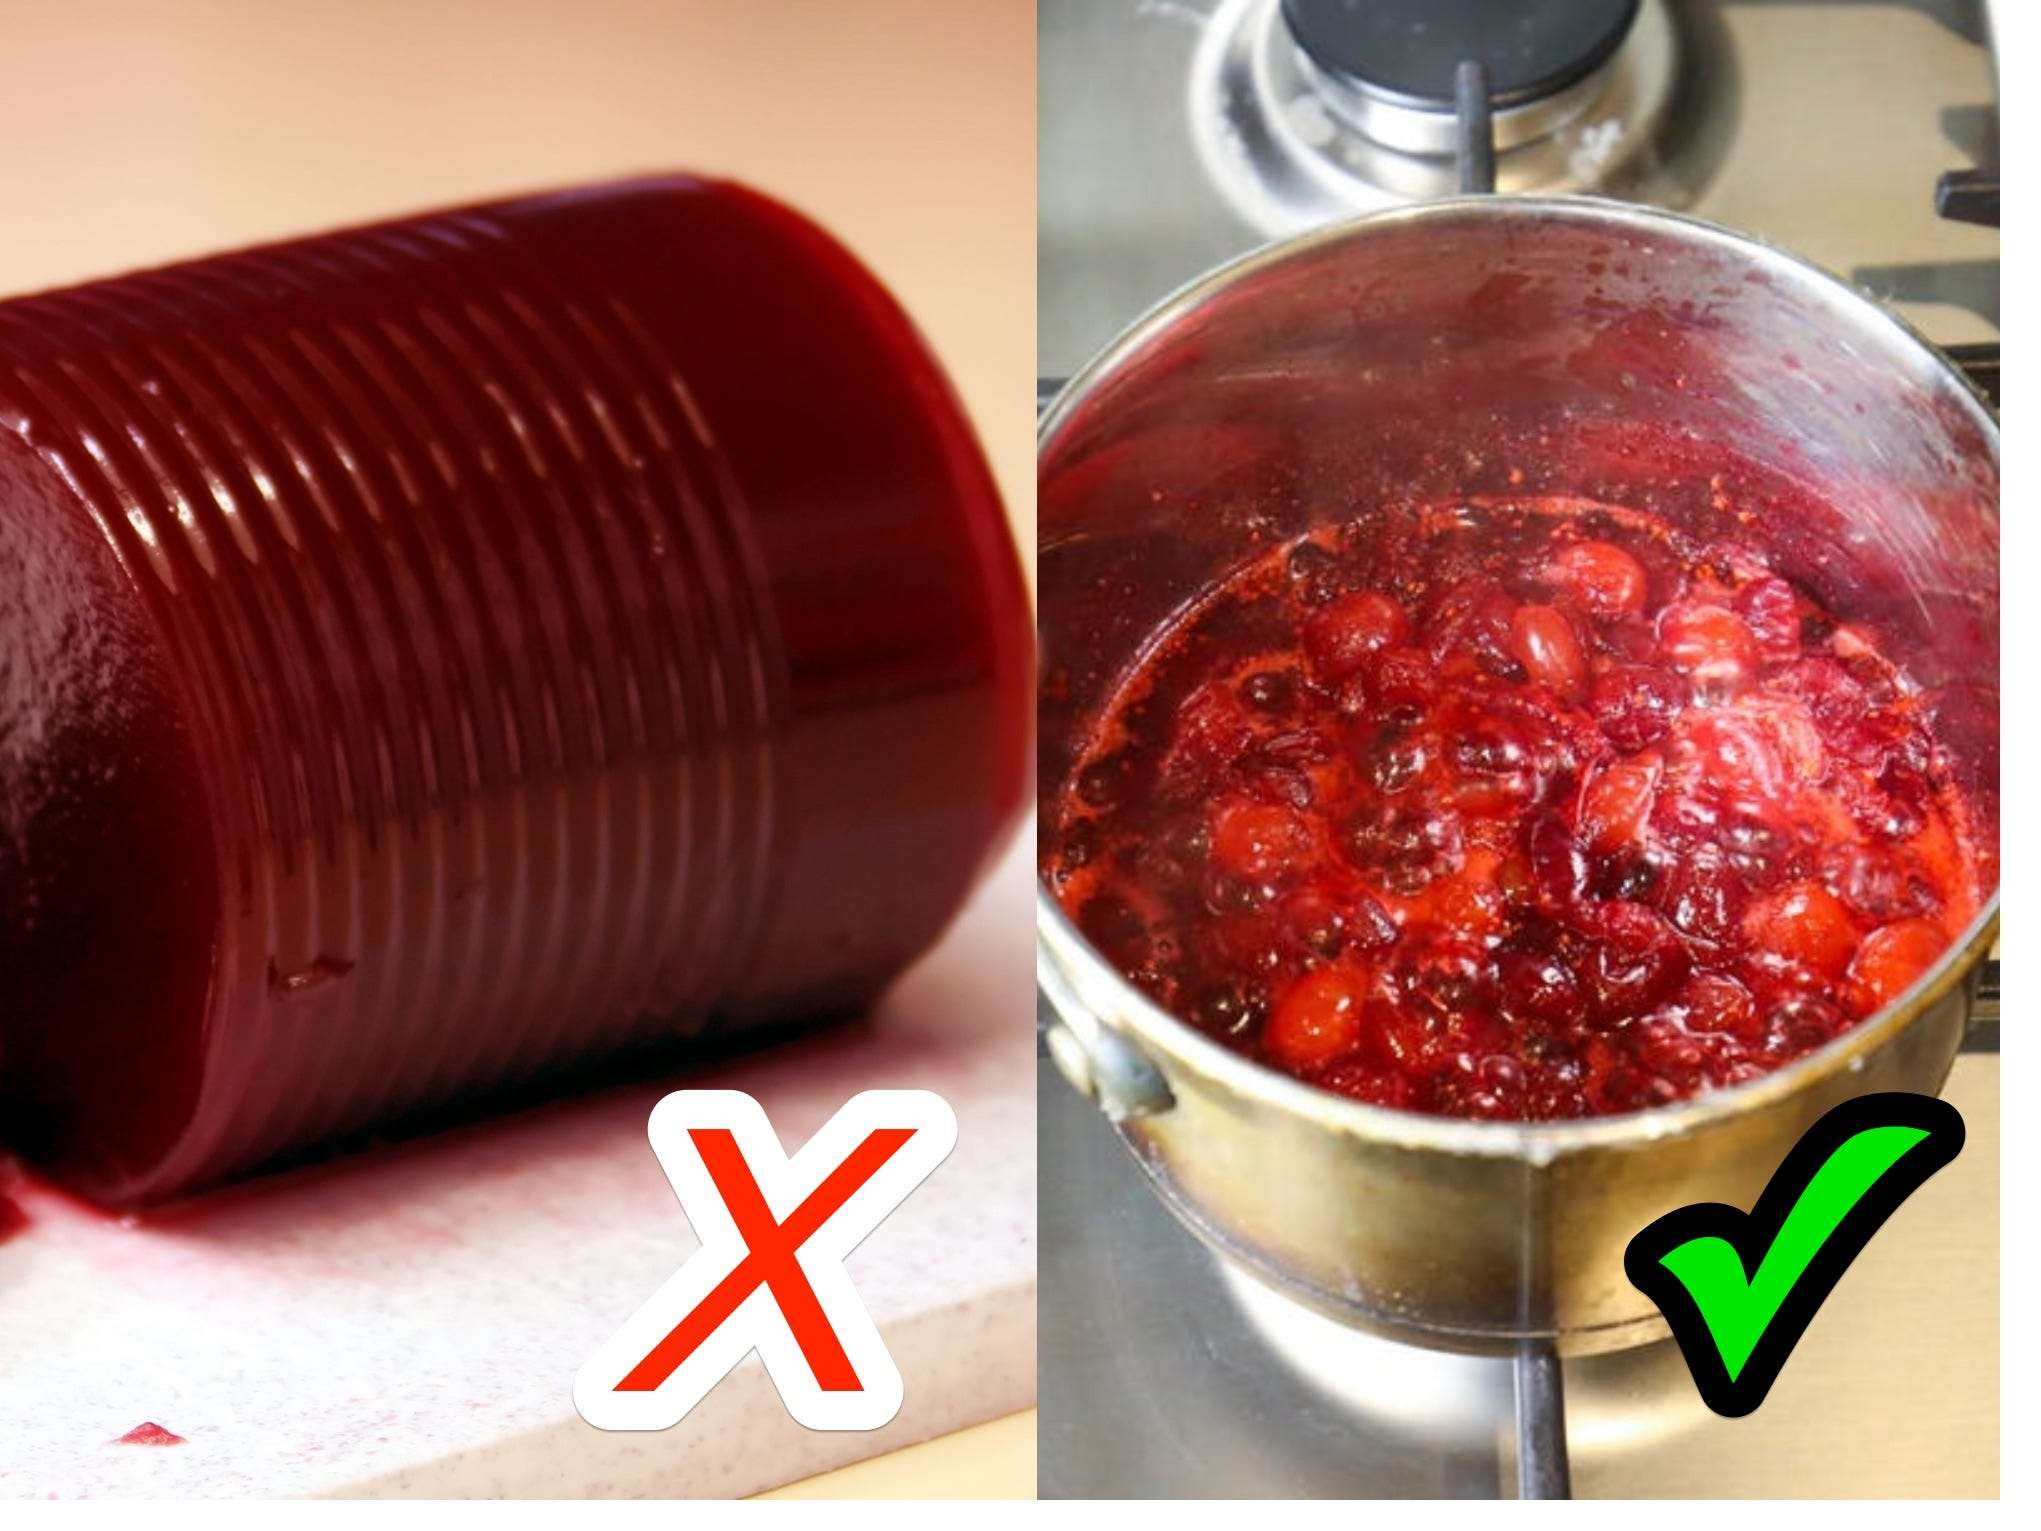 How To Improve Canned Cranberry Sauce For A Thanksgiving Side Dish